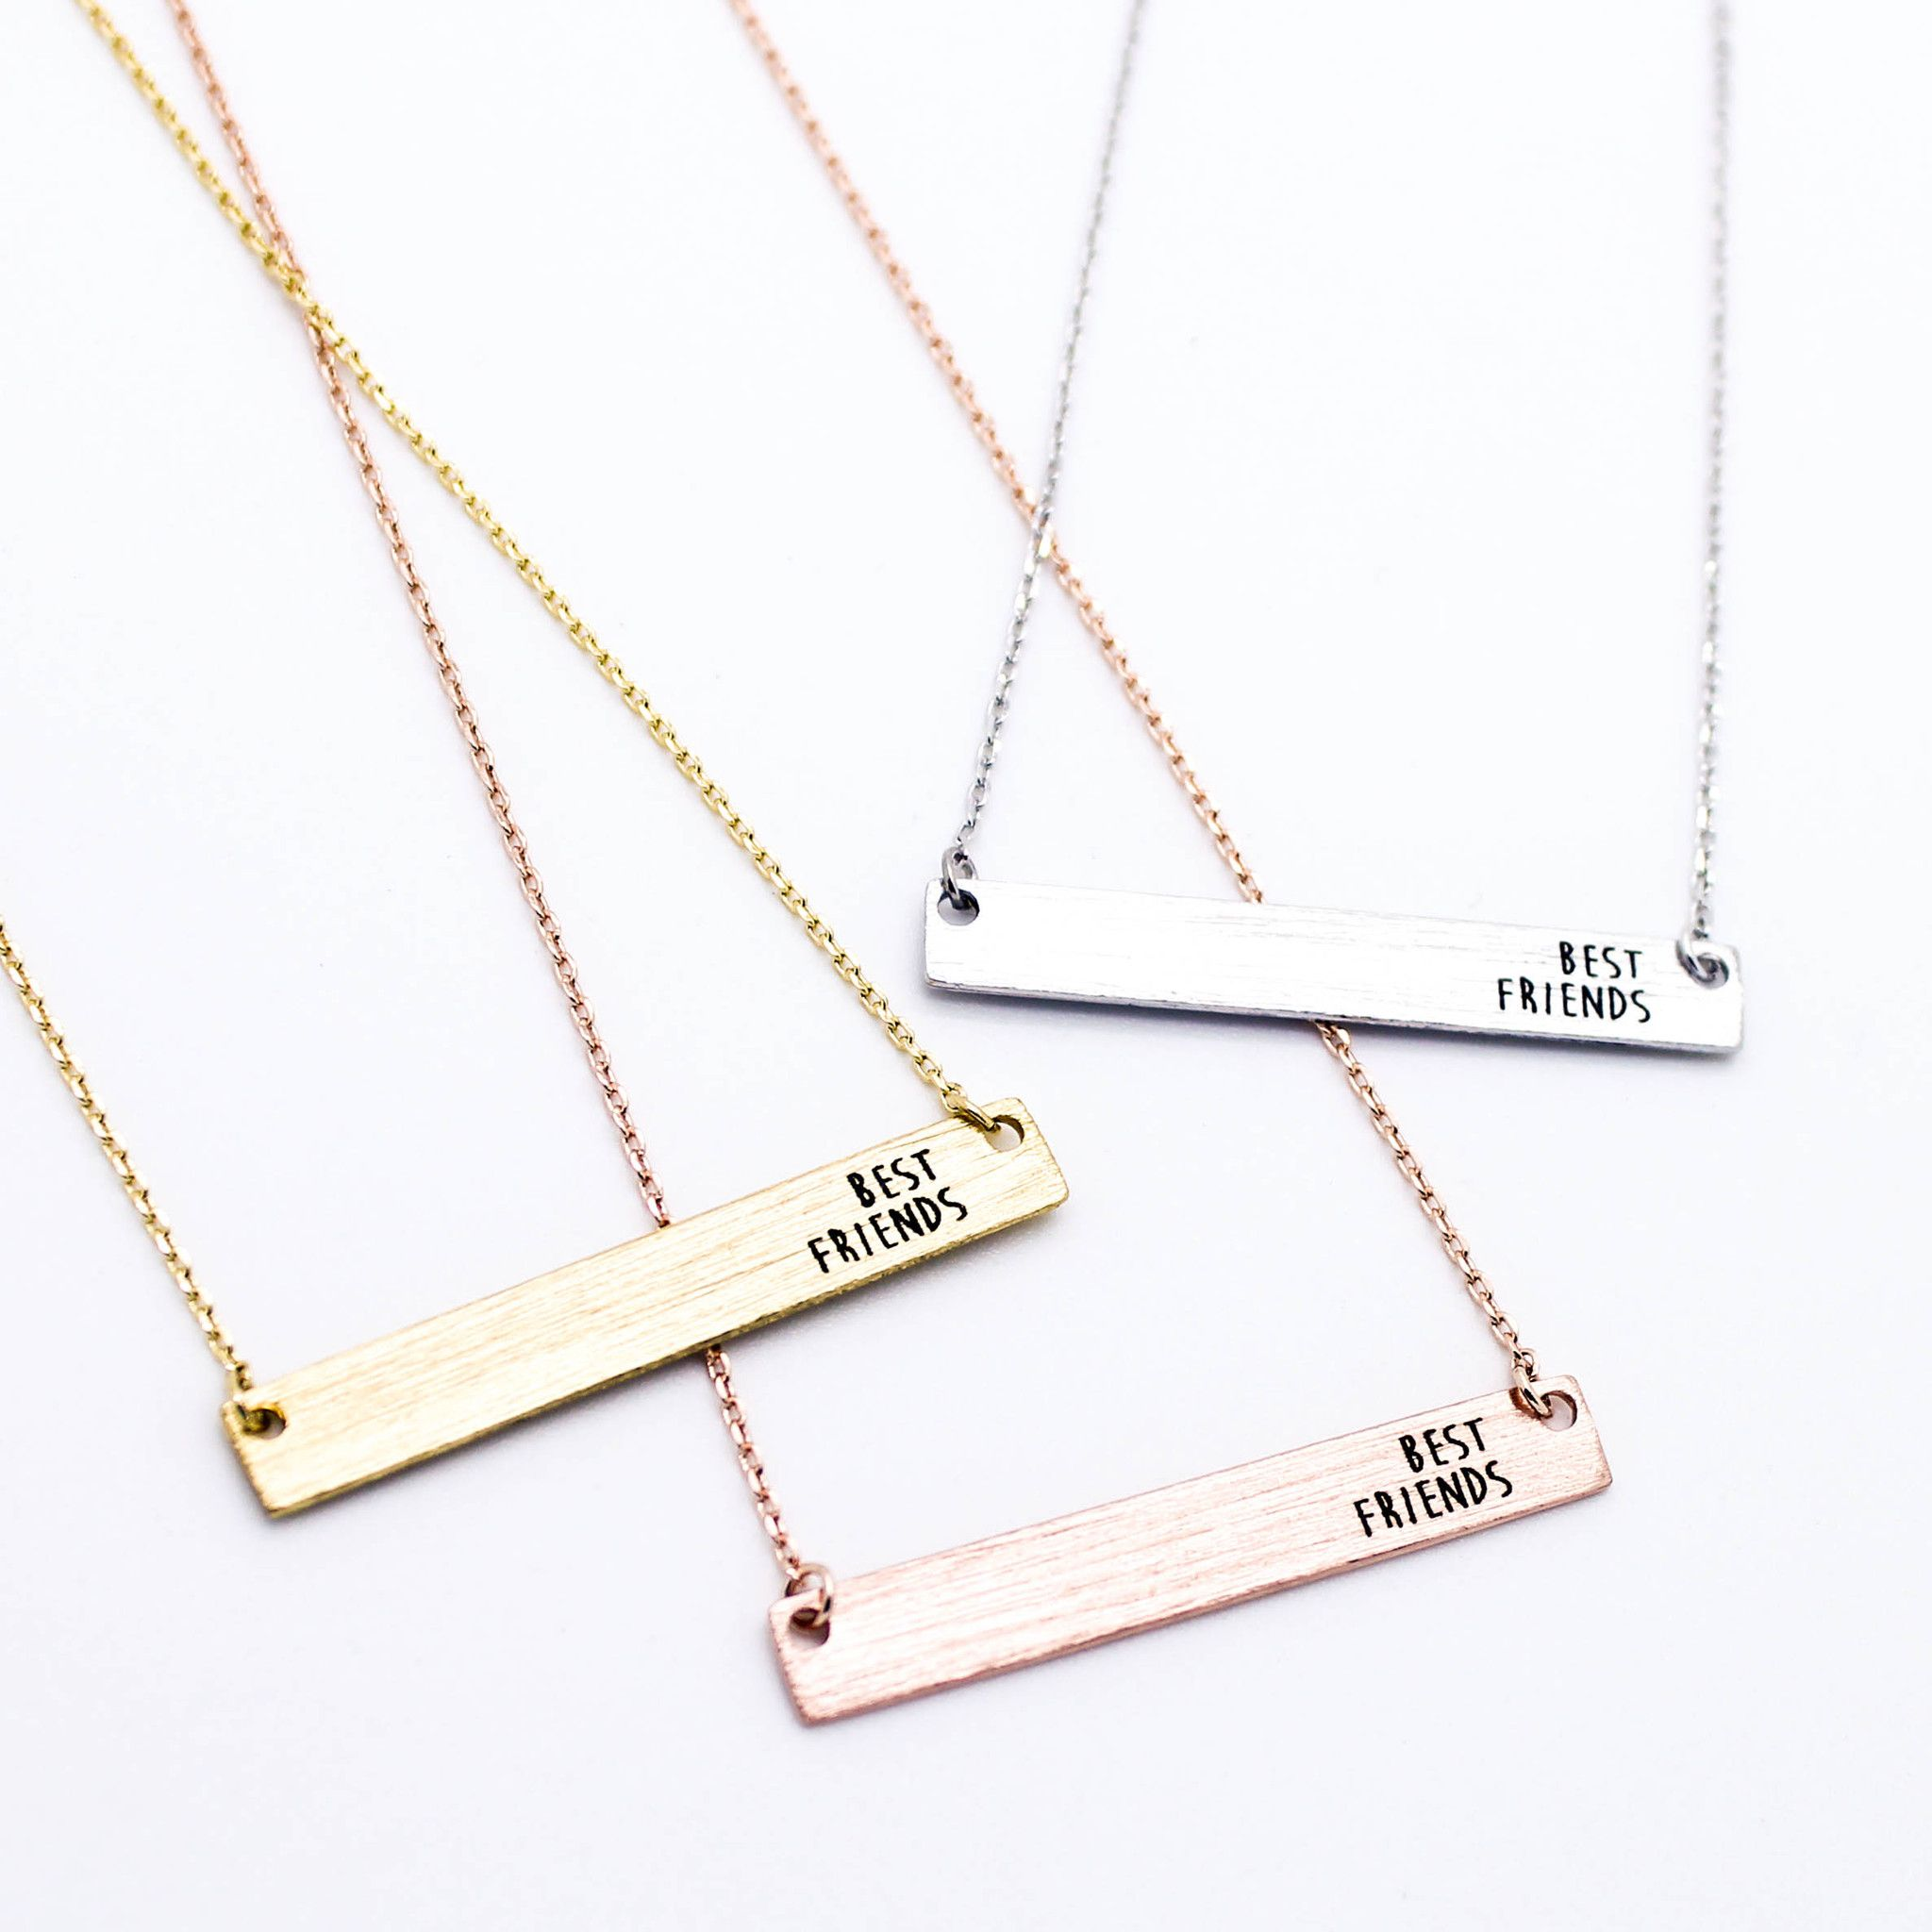 il a zoom necklace mountain latitude longitude coordinate listing fullxfull